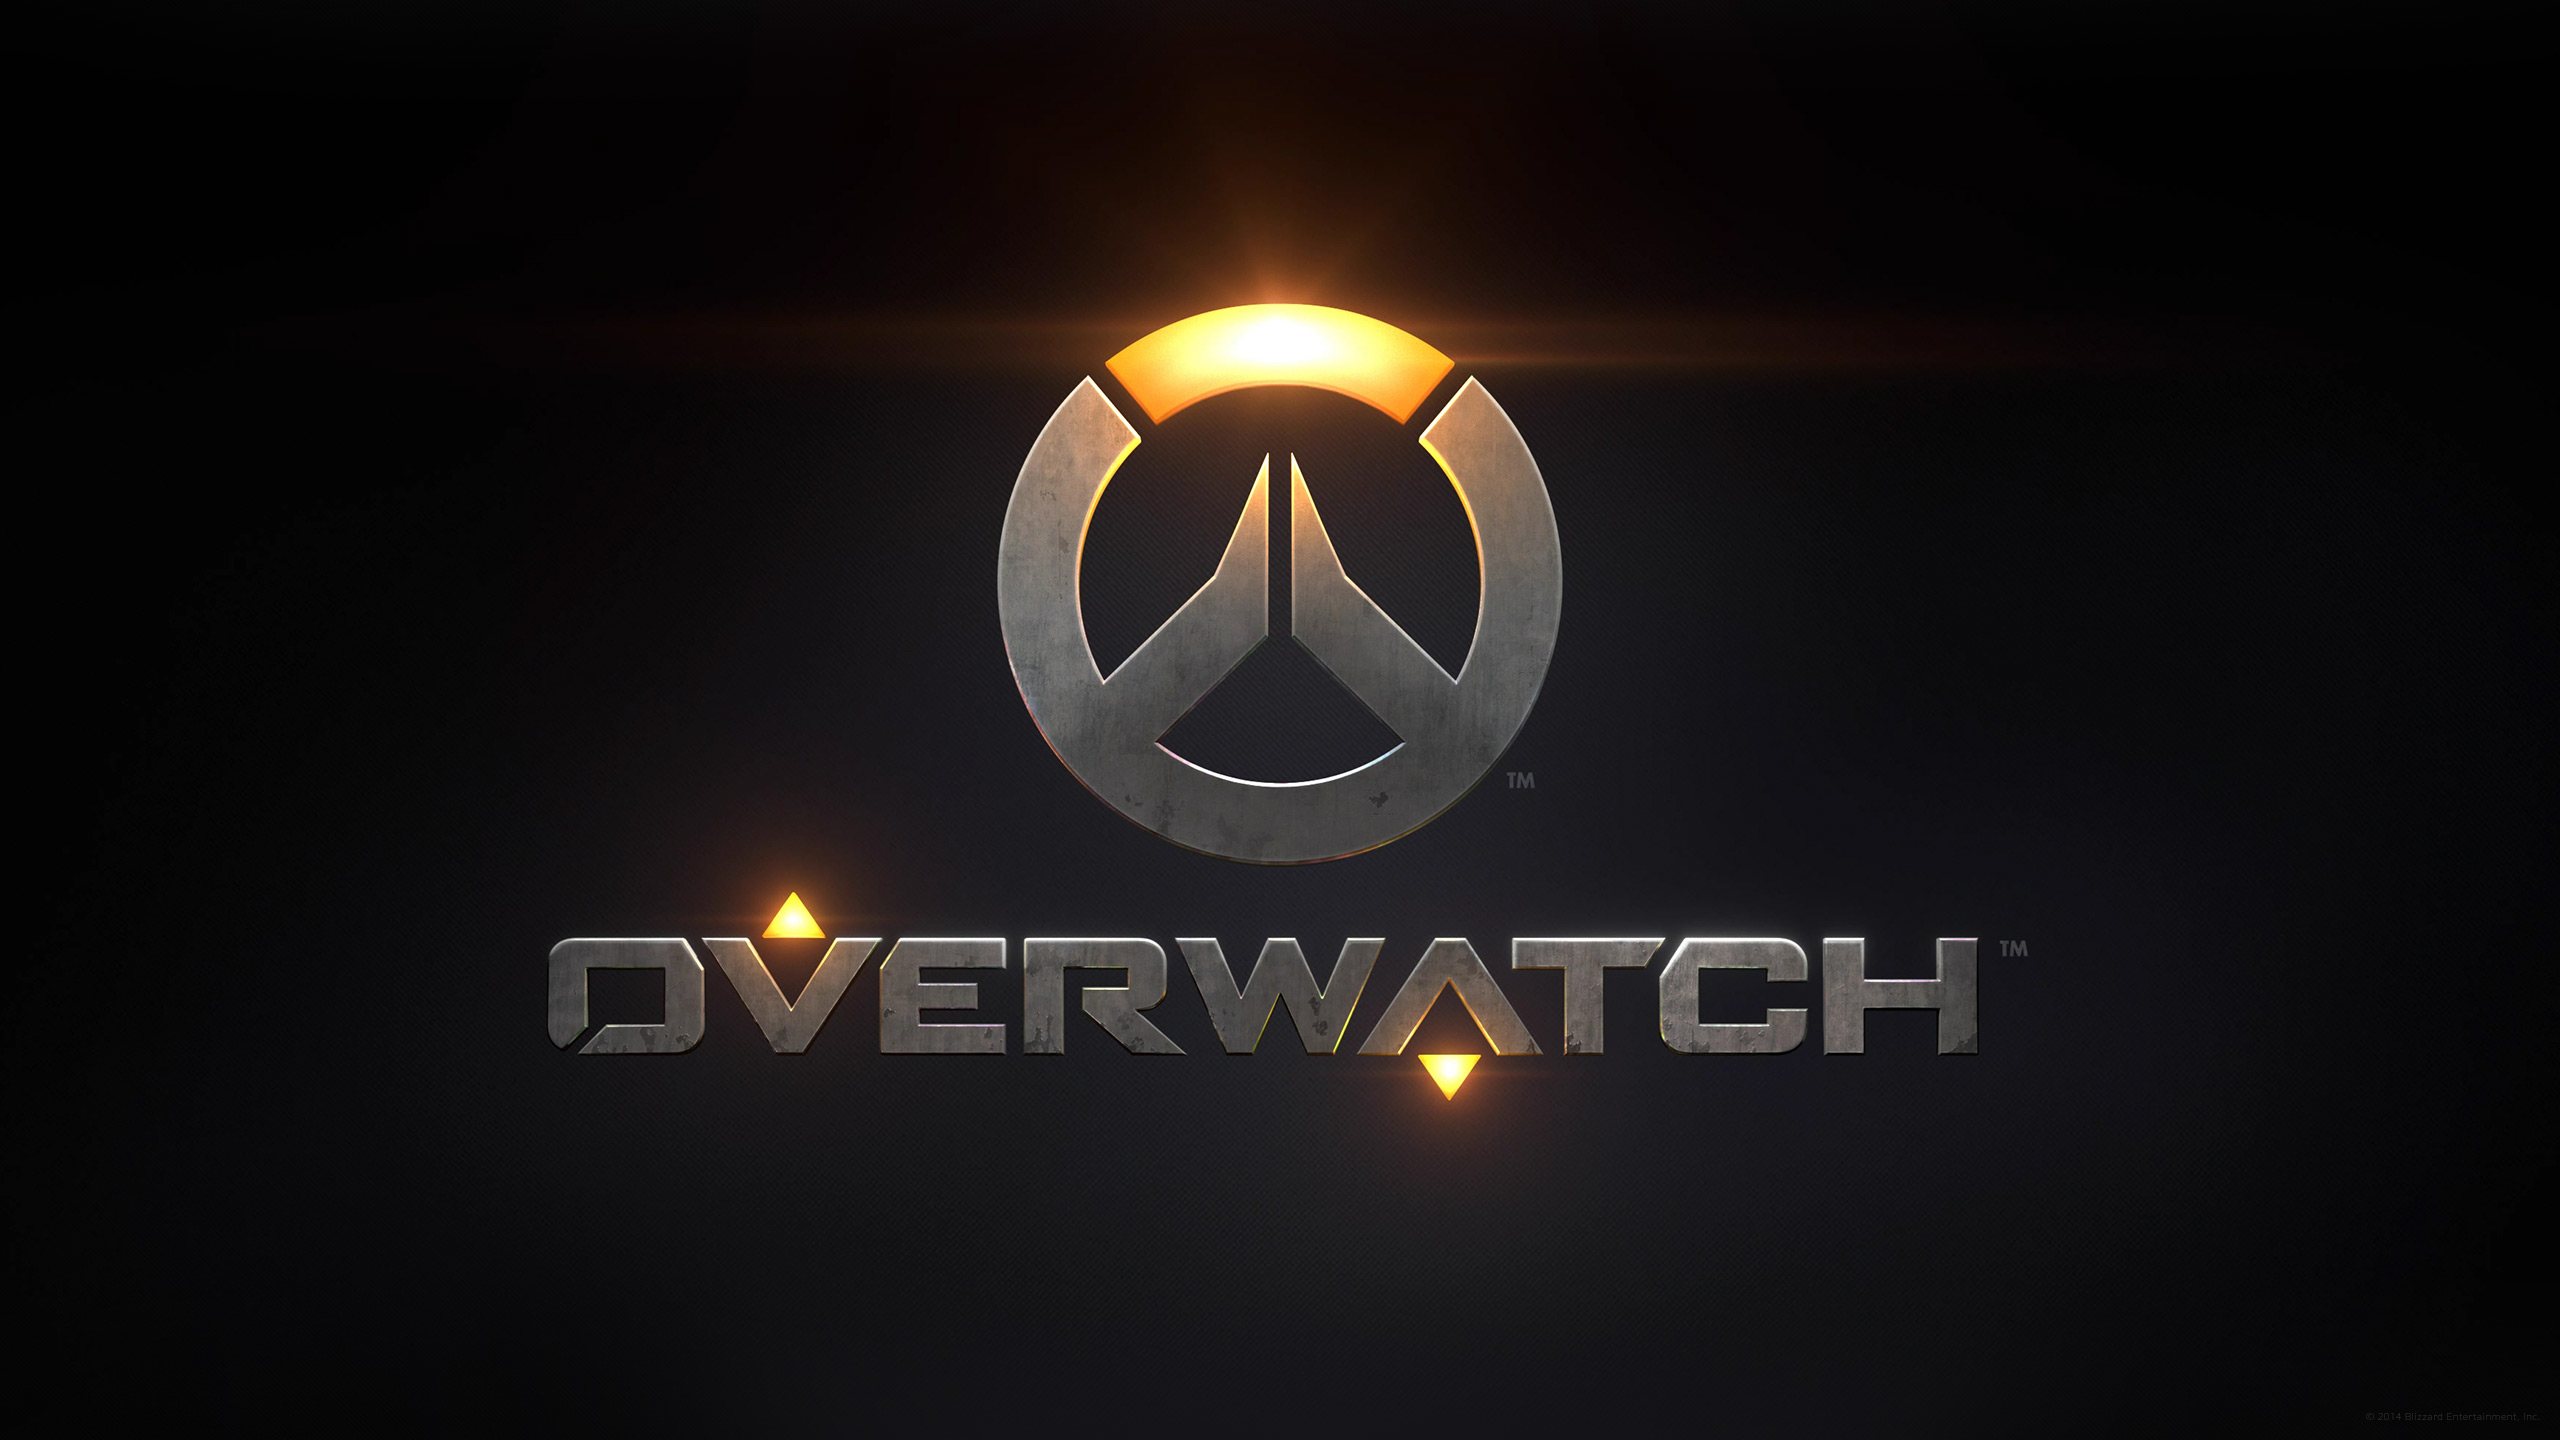 Overwatch full hd wallpaper and background 1920x1280 - Hd Wallpaper Background Id 553497